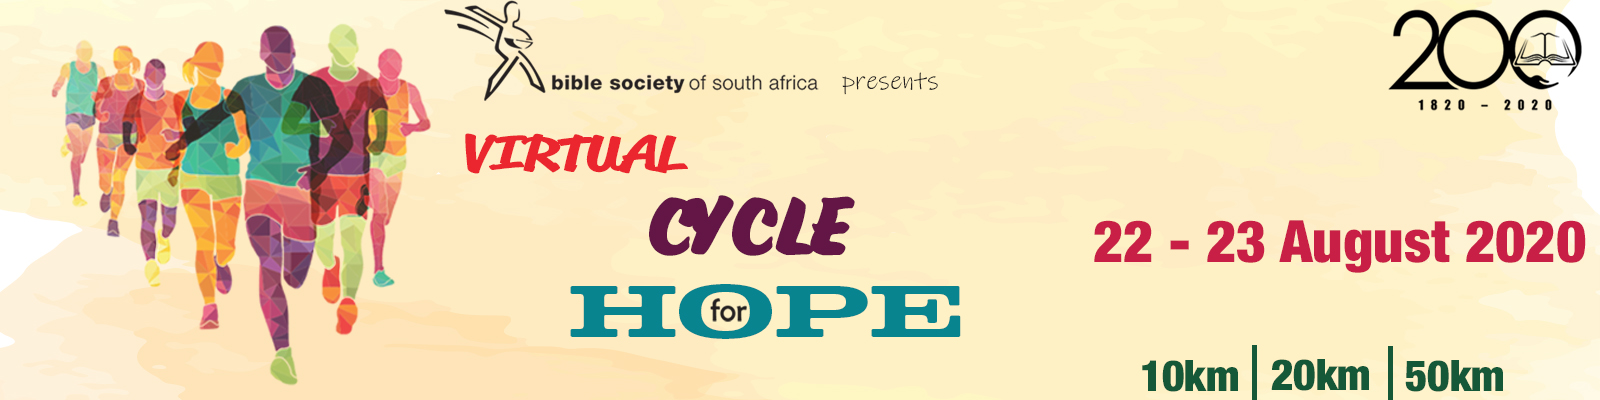 Cycle-for-Hope_Header Cycle for Hope 50km Results